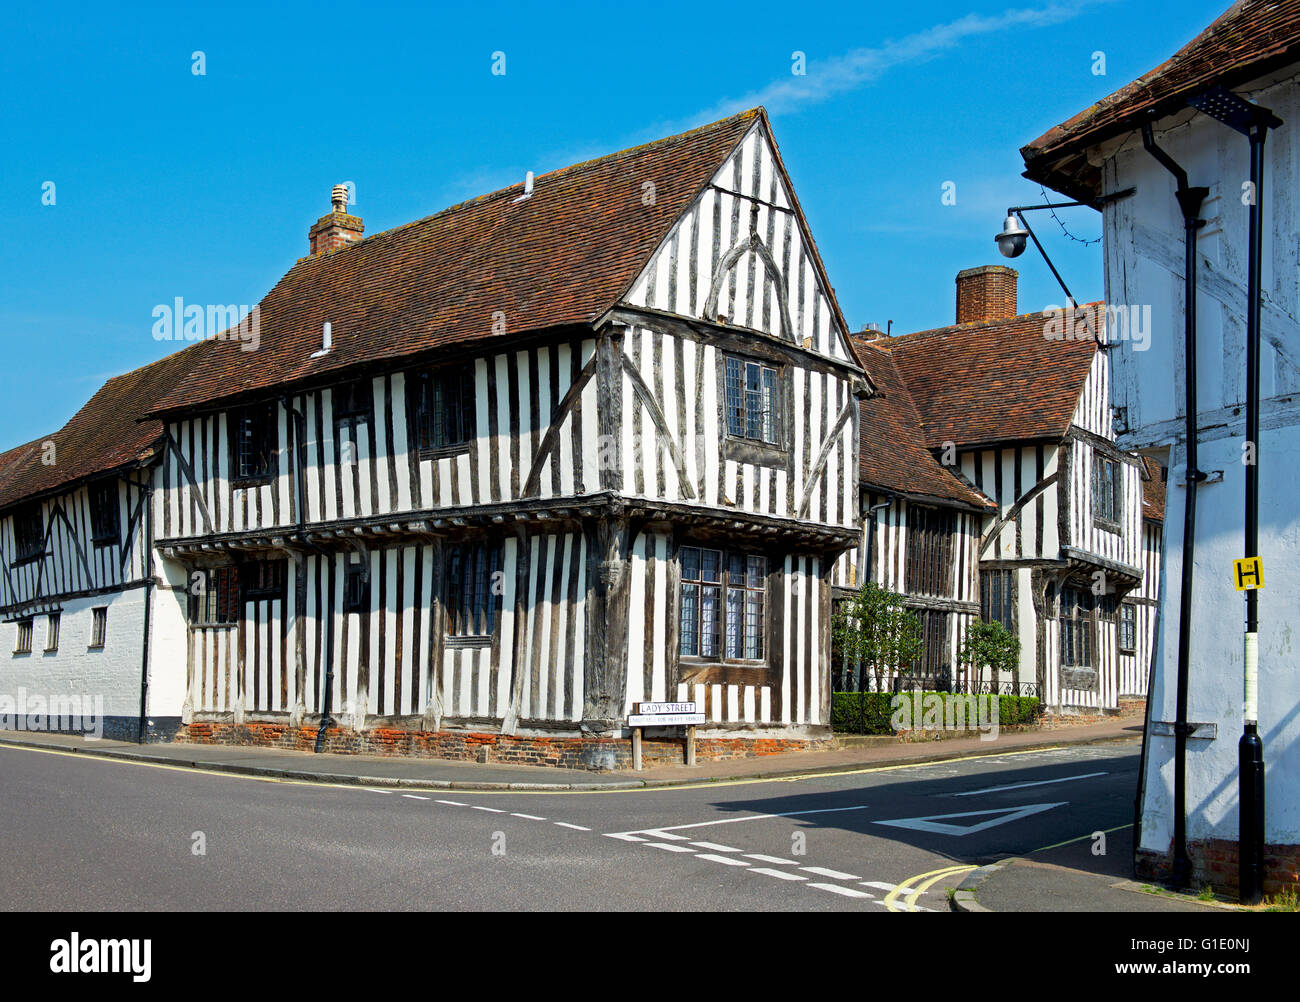 Half-timbered buildings on Water Street, in the village of Lavenham, Suffolk, England UK - Stock Image